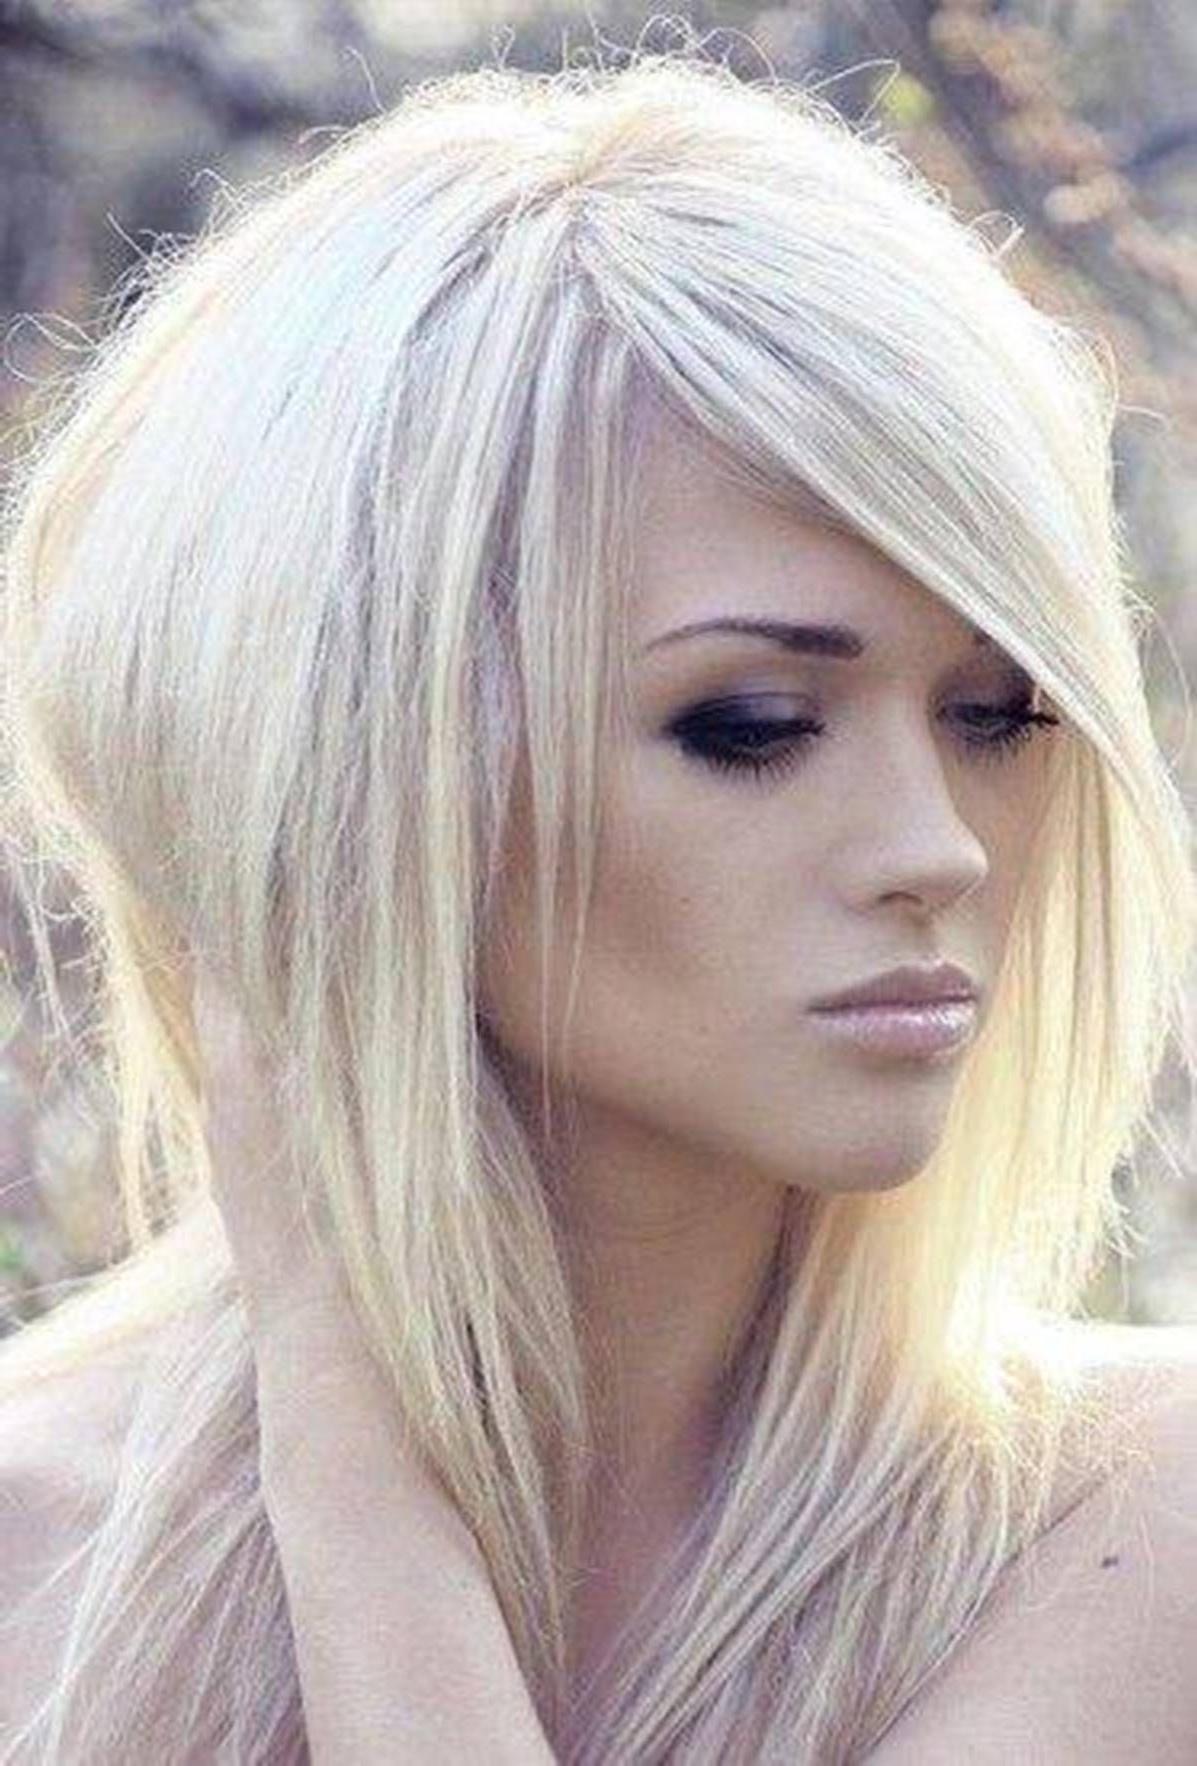 [%Most Up To Date Fresh And Flirty Layered Blonde Hairstyles Inside Blonde Long Shag Hairstyles [ Waterbabiesbikini ] #beauty|Blonde Long Shag Hairstyles [ Waterbabiesbikini ] #beauty Within 2017 Fresh And Flirty Layered Blonde Hairstyles%] (View 2 of 20)